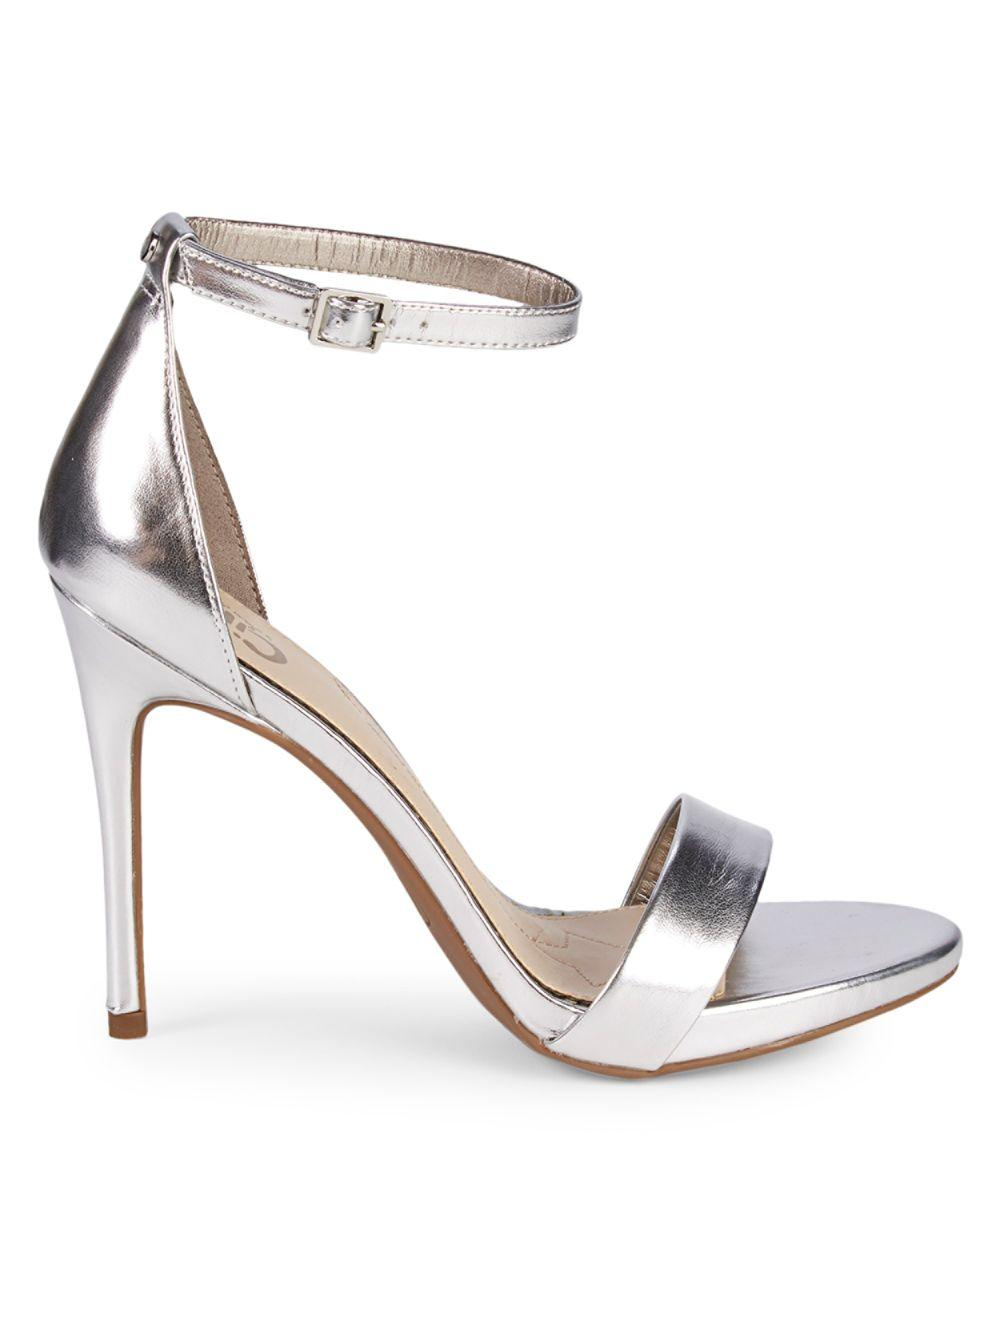 aac342284bae42 Circus By Sam Edelman Angela Ankle-strap Stiletto Sandals in ...